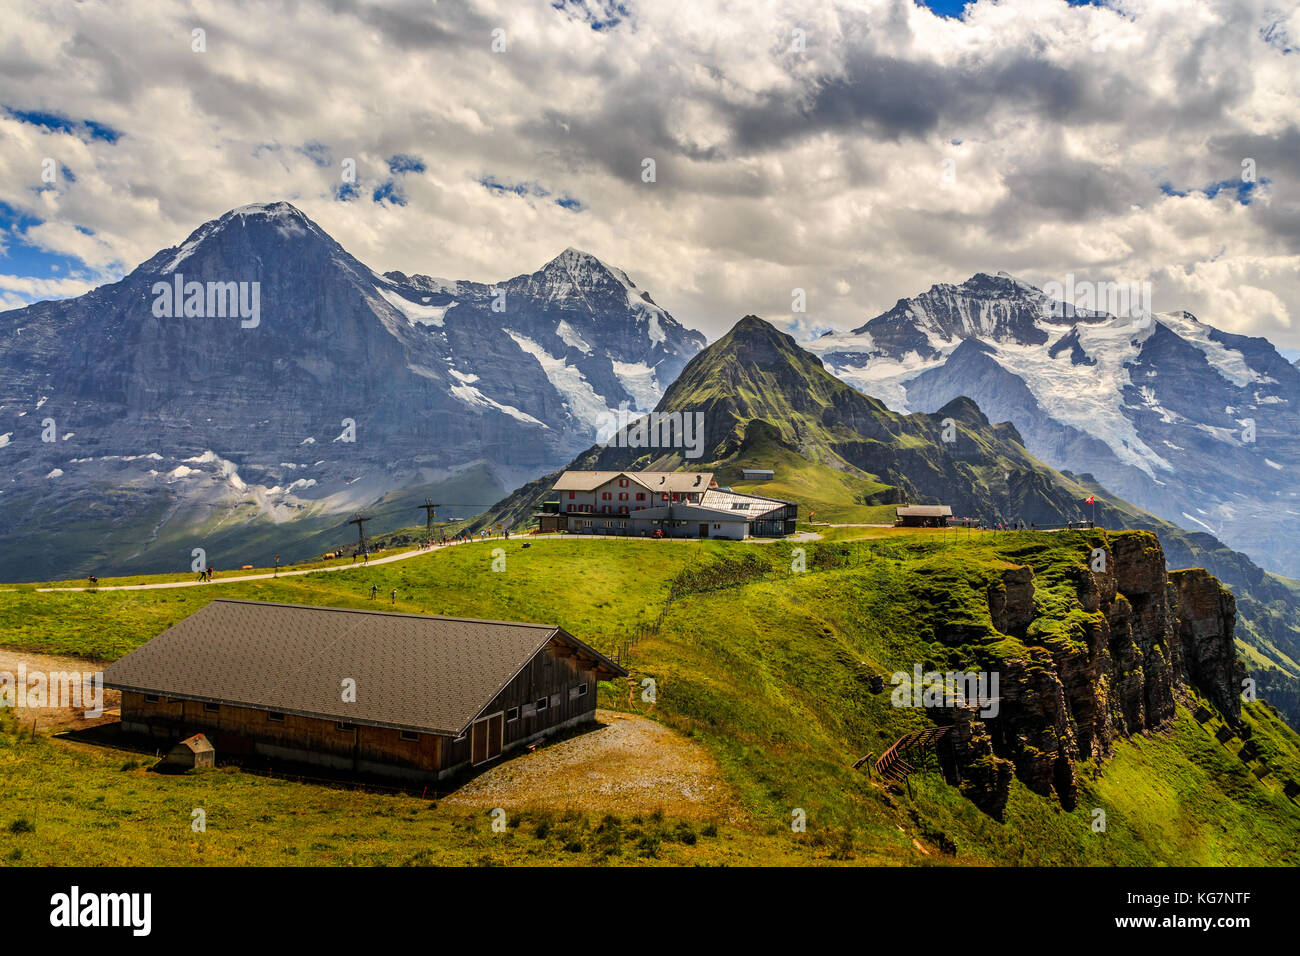 Stunning view on worldfamous mountain trio Eiger, Monch and Jungfrau with Tschuggen in the foreground. Seen from - Stock Image